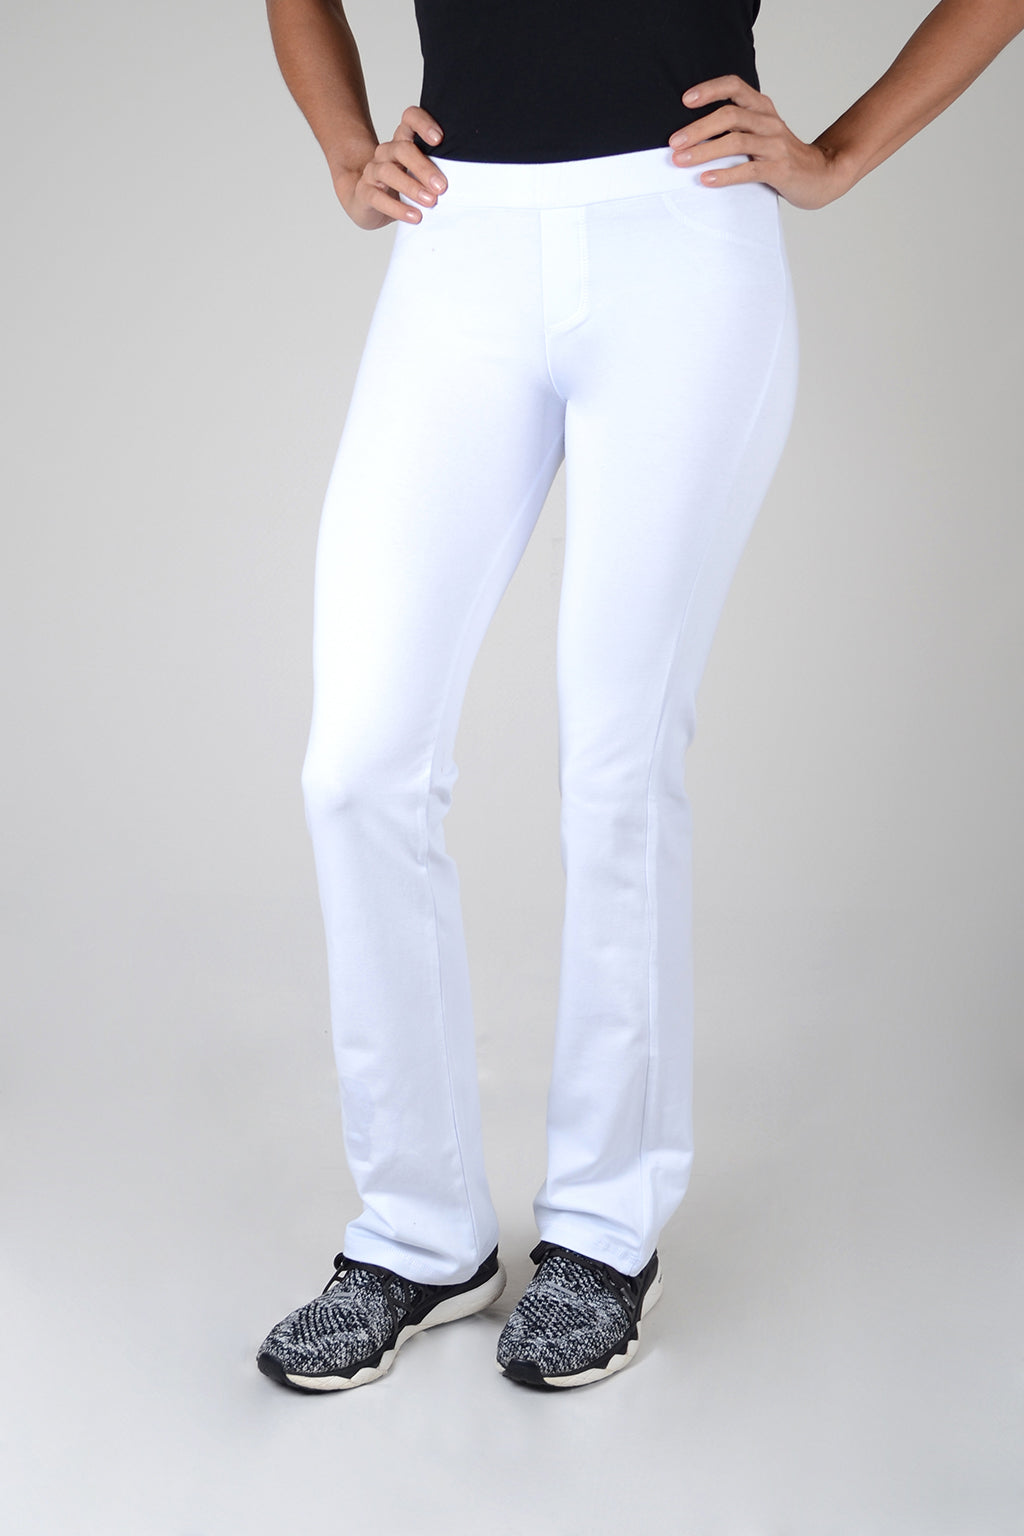 Leggings Bota Ancha Blanco